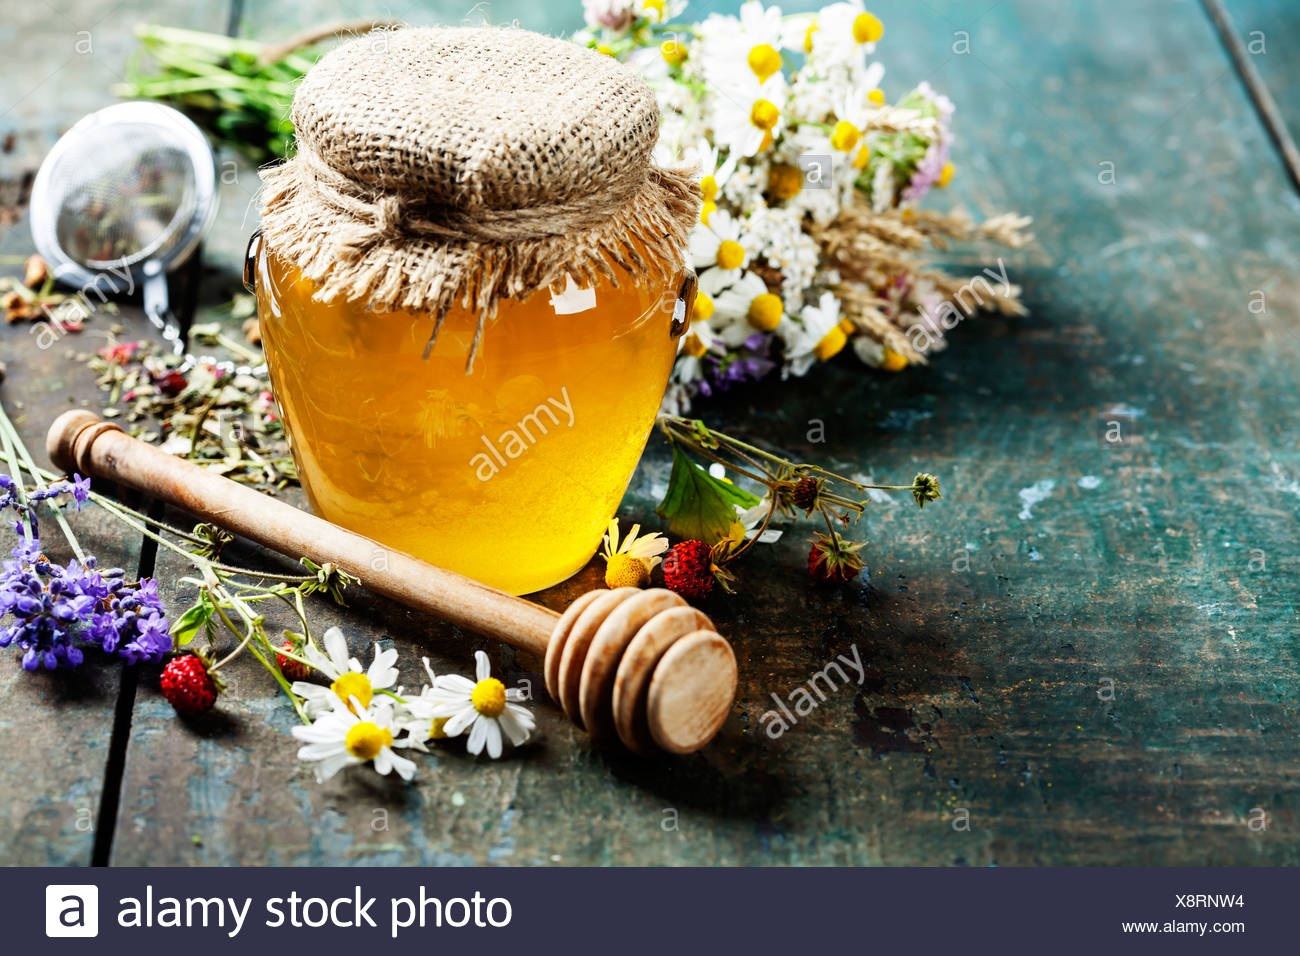 Honey and Herbal tea on wooden background - summer, health and organic food concept - Stock Image